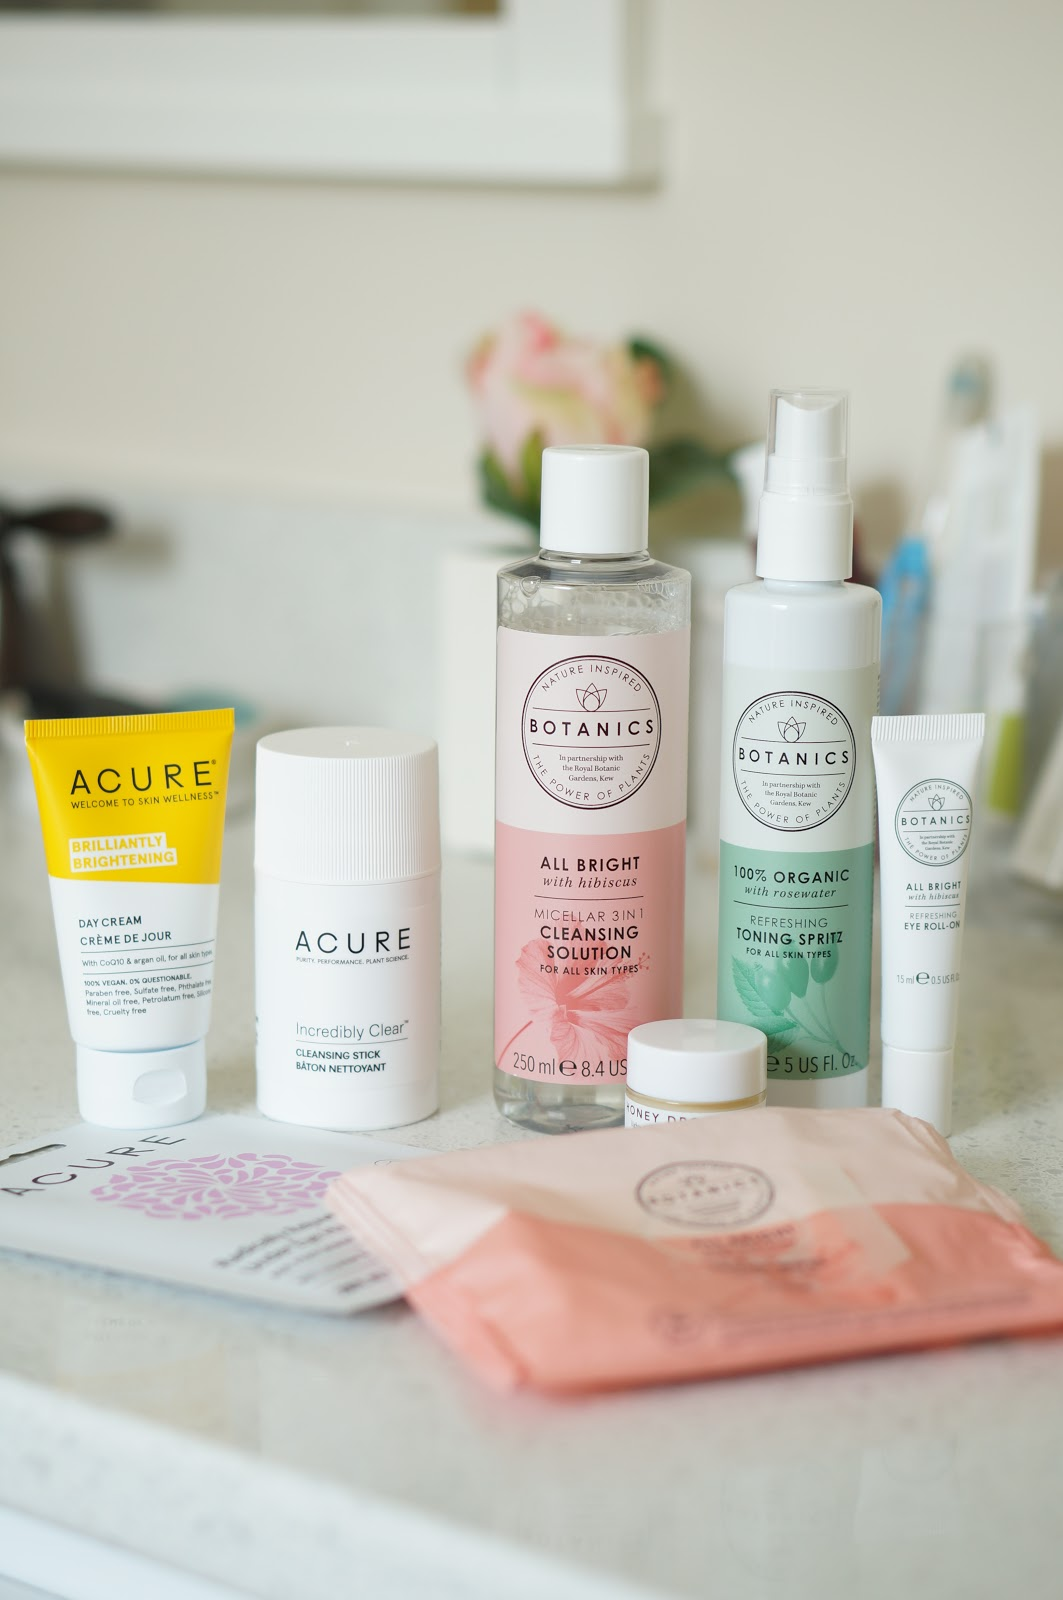 Popular North Carolina style blogger Rebecca Lately shares the recent additions to her cruelty free skincare routine.  Check it out to see what she's been using!